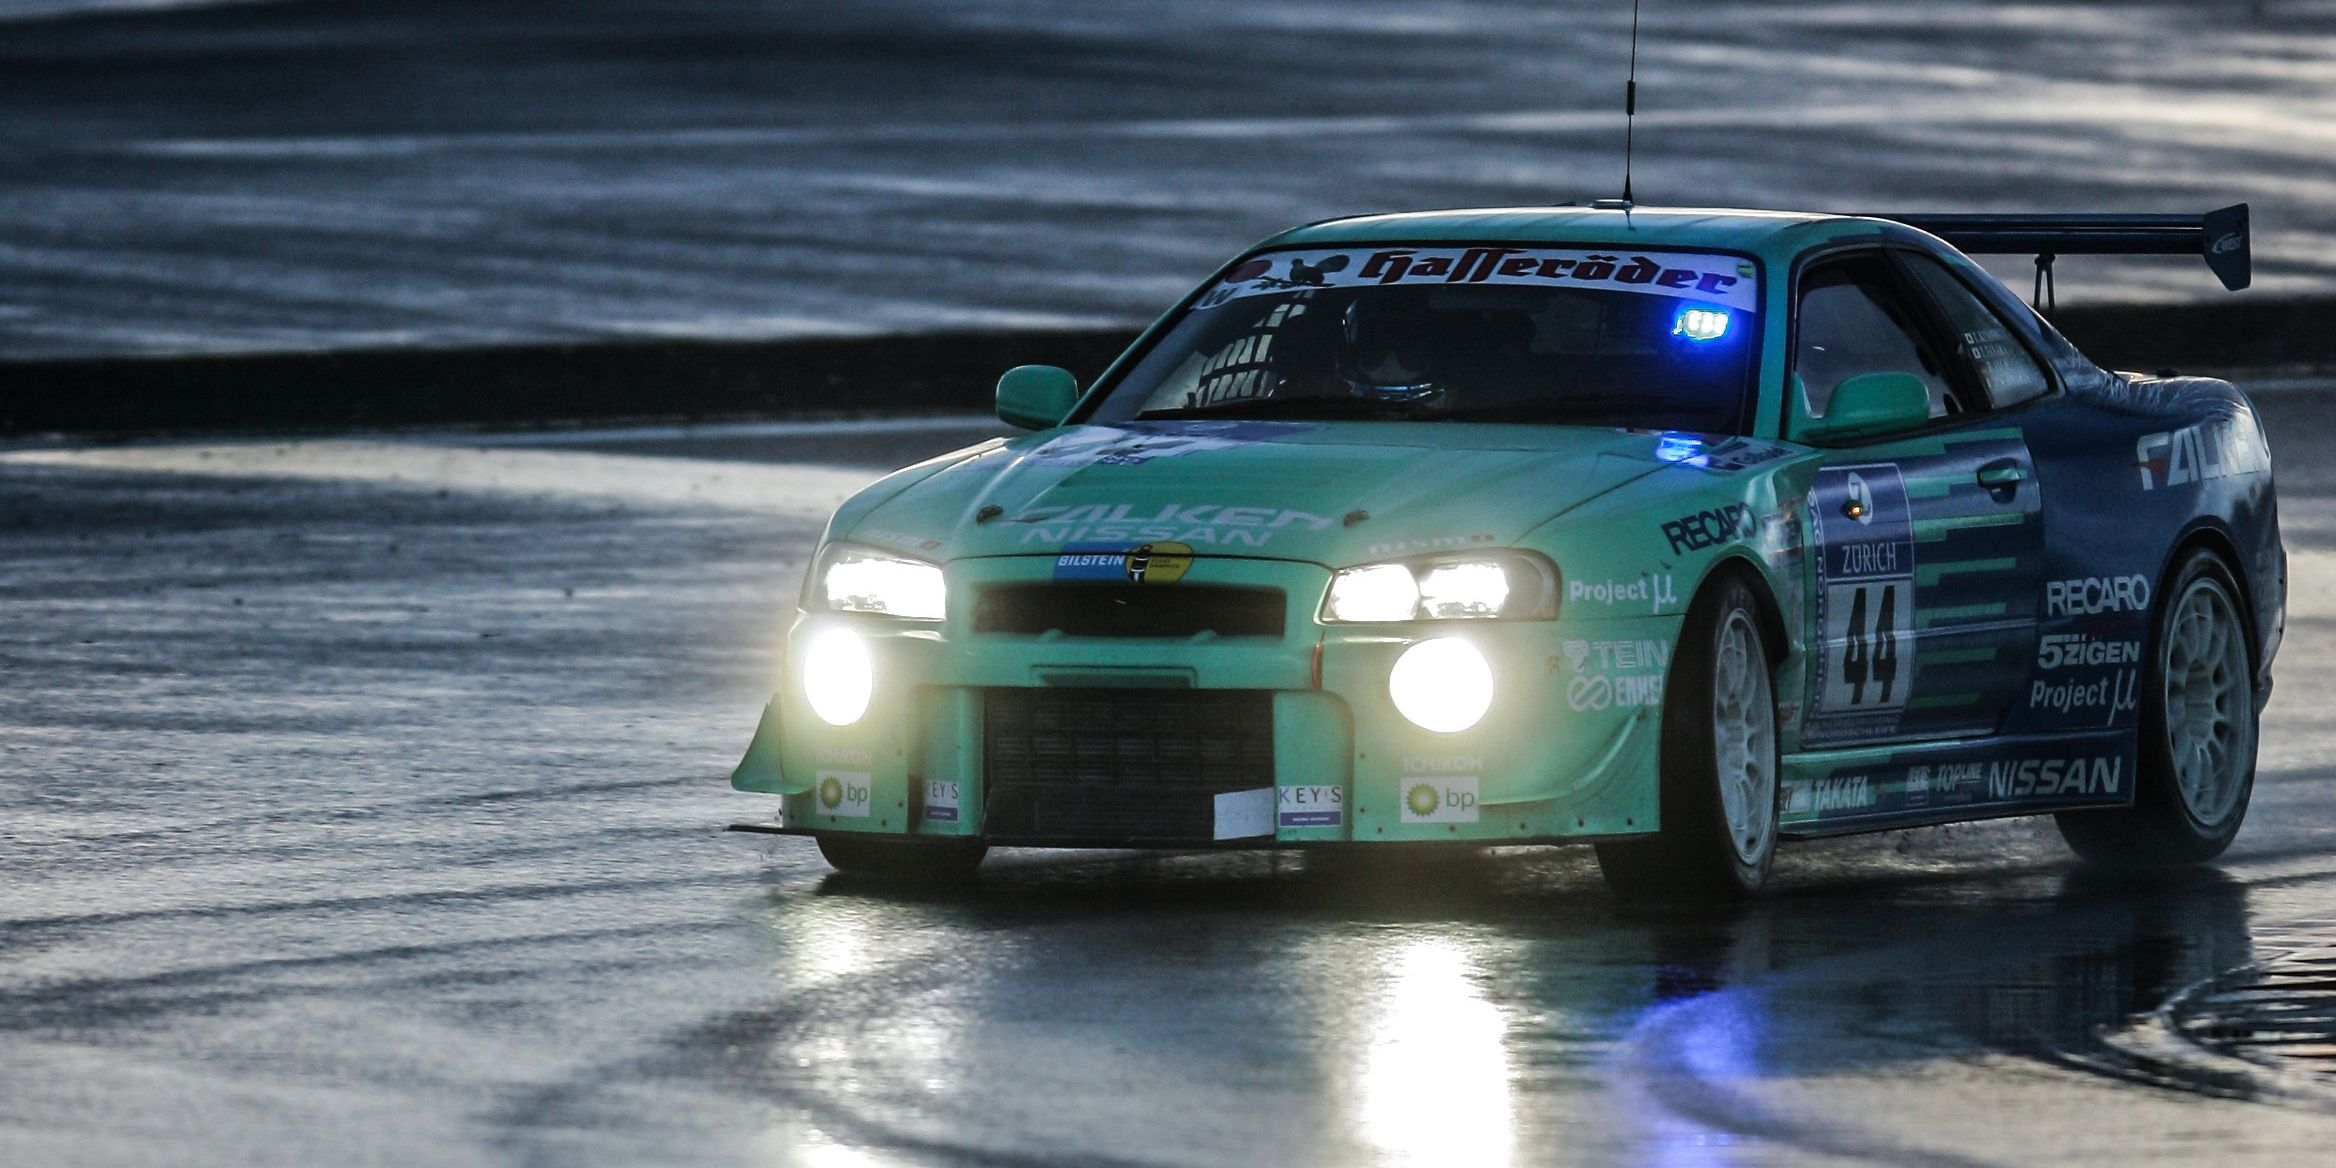 Circuito Qatar : All the cool falken race cars from the last 17 nürburgring 24 hours